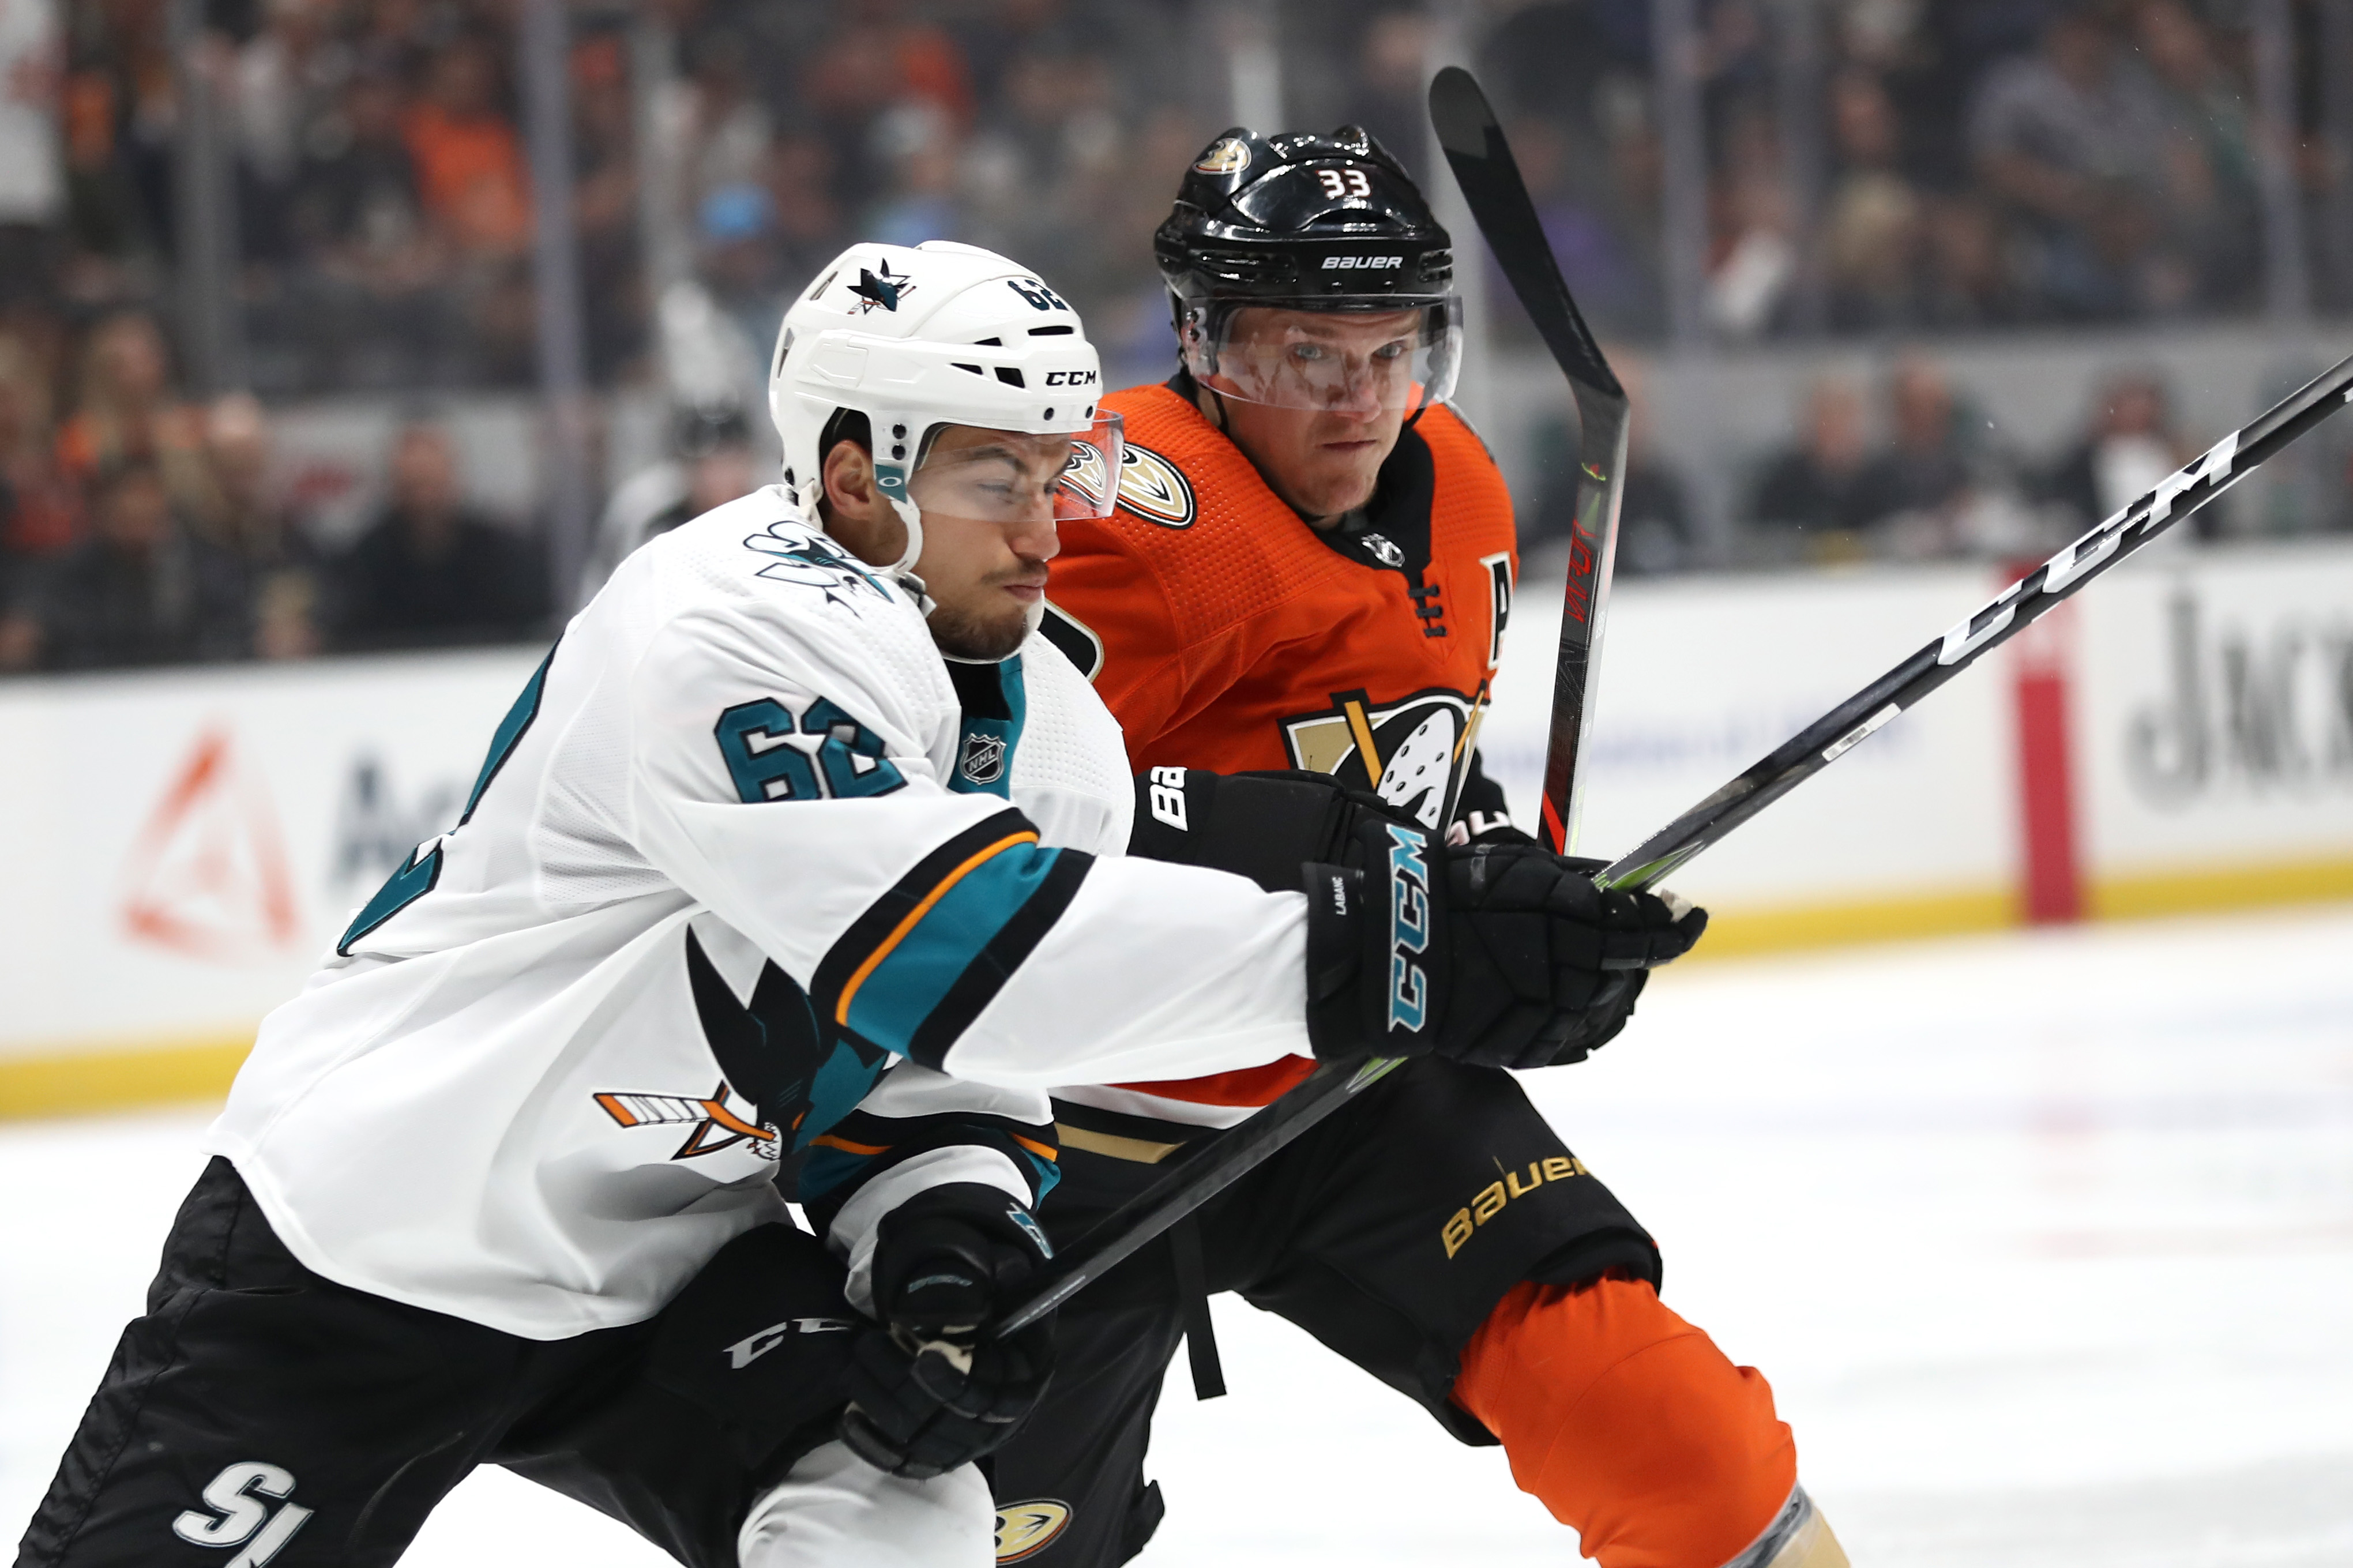 ANAHEIM, CALIFORNIA - OCTOBER 05: Kevin Labanc #62 of the San Jose Sharks battles Jakob Silfverberg #33 of the Anaheim Ducks for position during the first period of a game at Honda Center on October 05, 2019 in Anaheim, California.